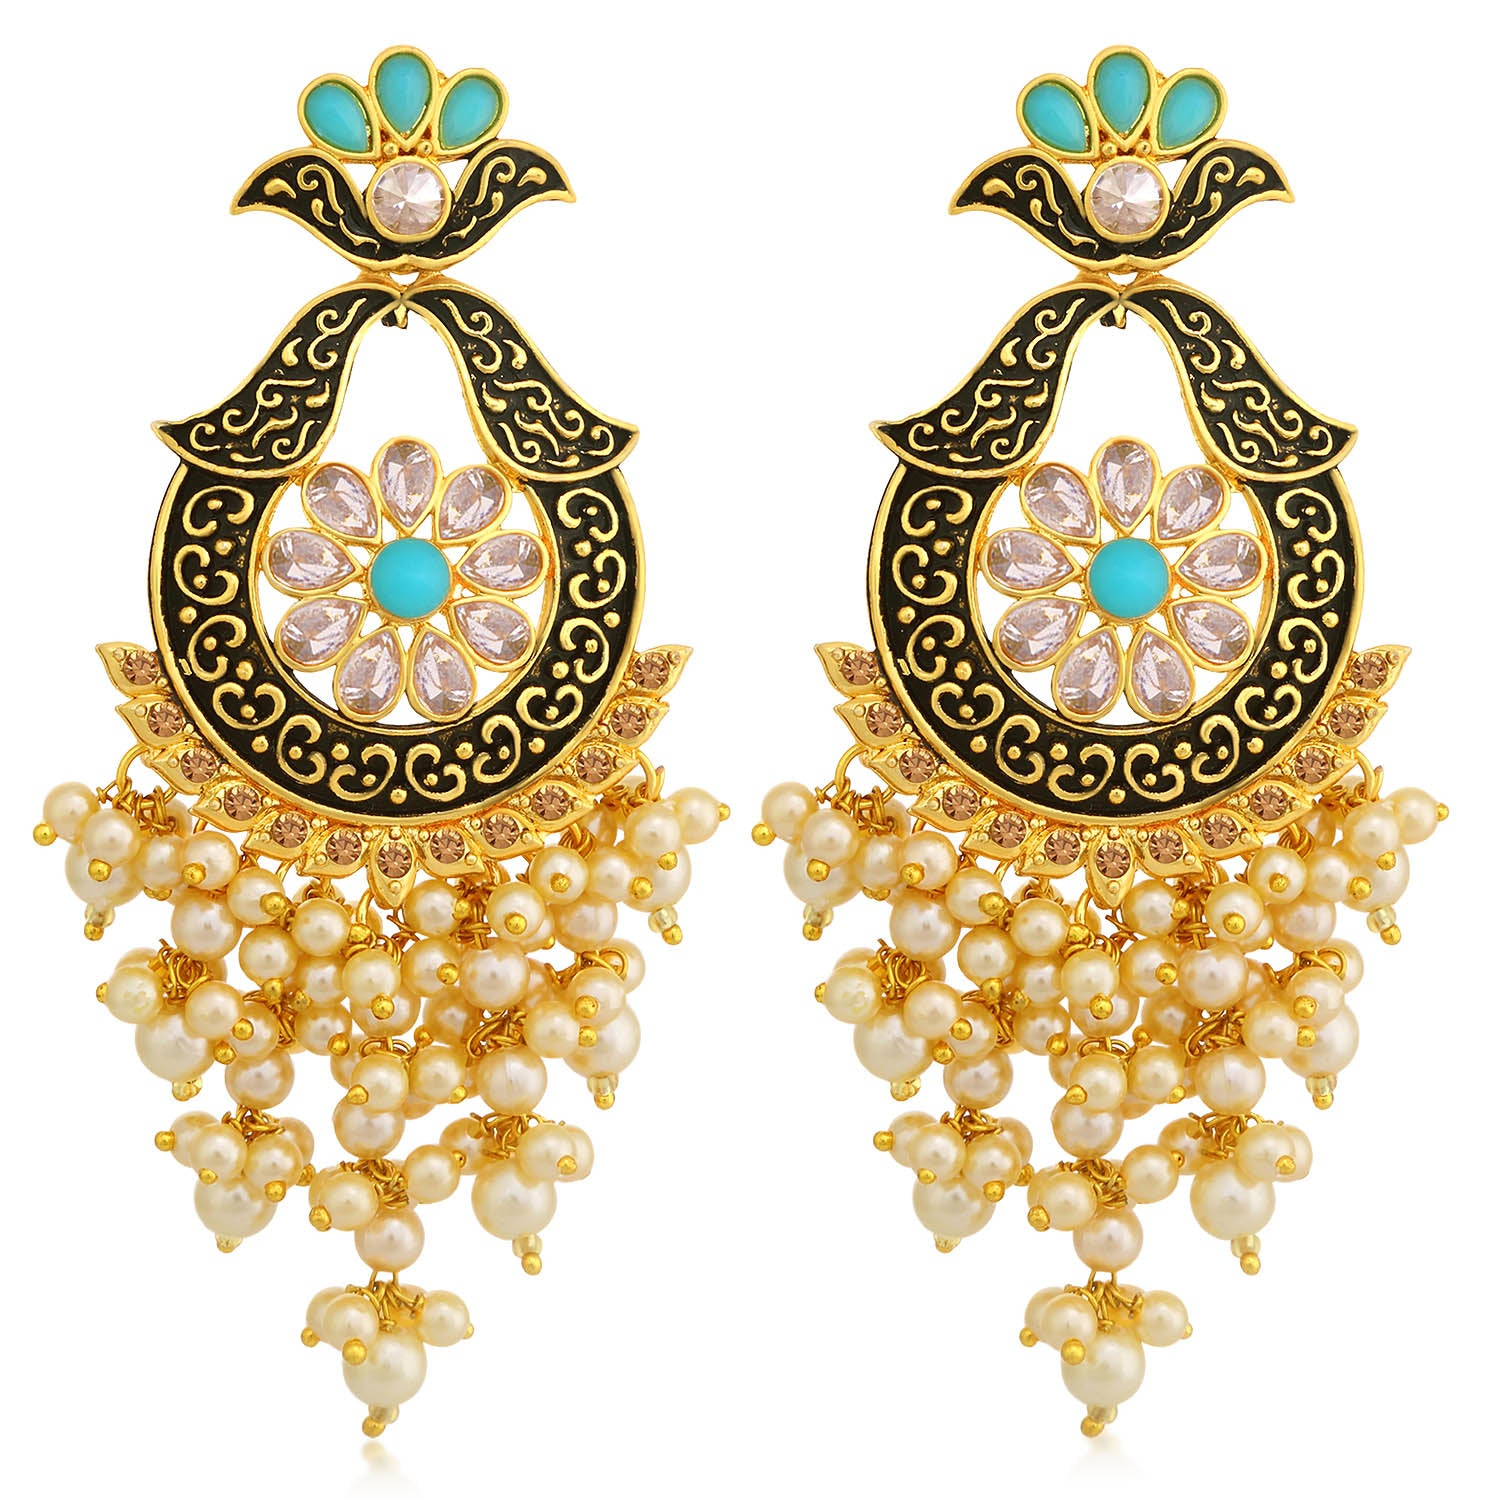 Sukkhi Precious LCT Stone Gold Plated Pearl Meenakari Chandelier Earring For Women-SUKKHI1-Earring